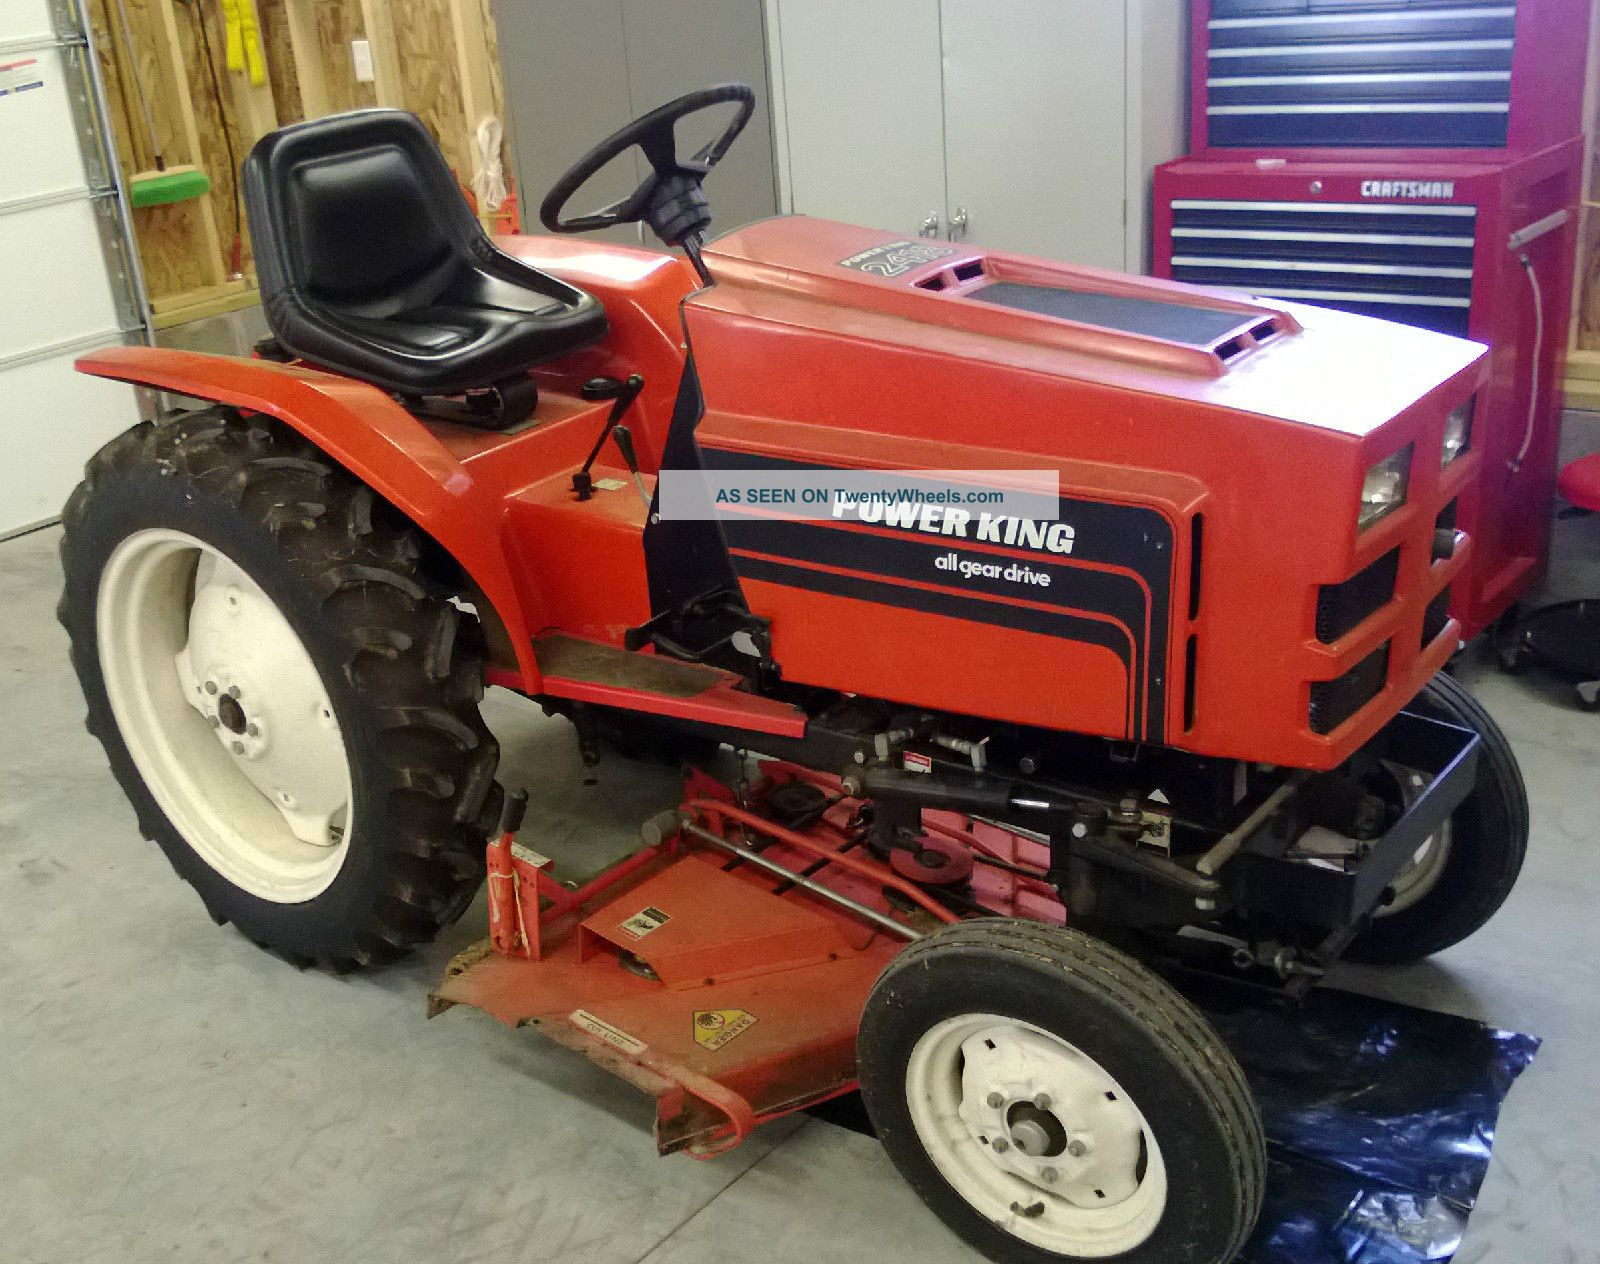 hight resolution of power king 2418 lawn tractor power king lawn tractors power king lawn tractors tractorhd mobi